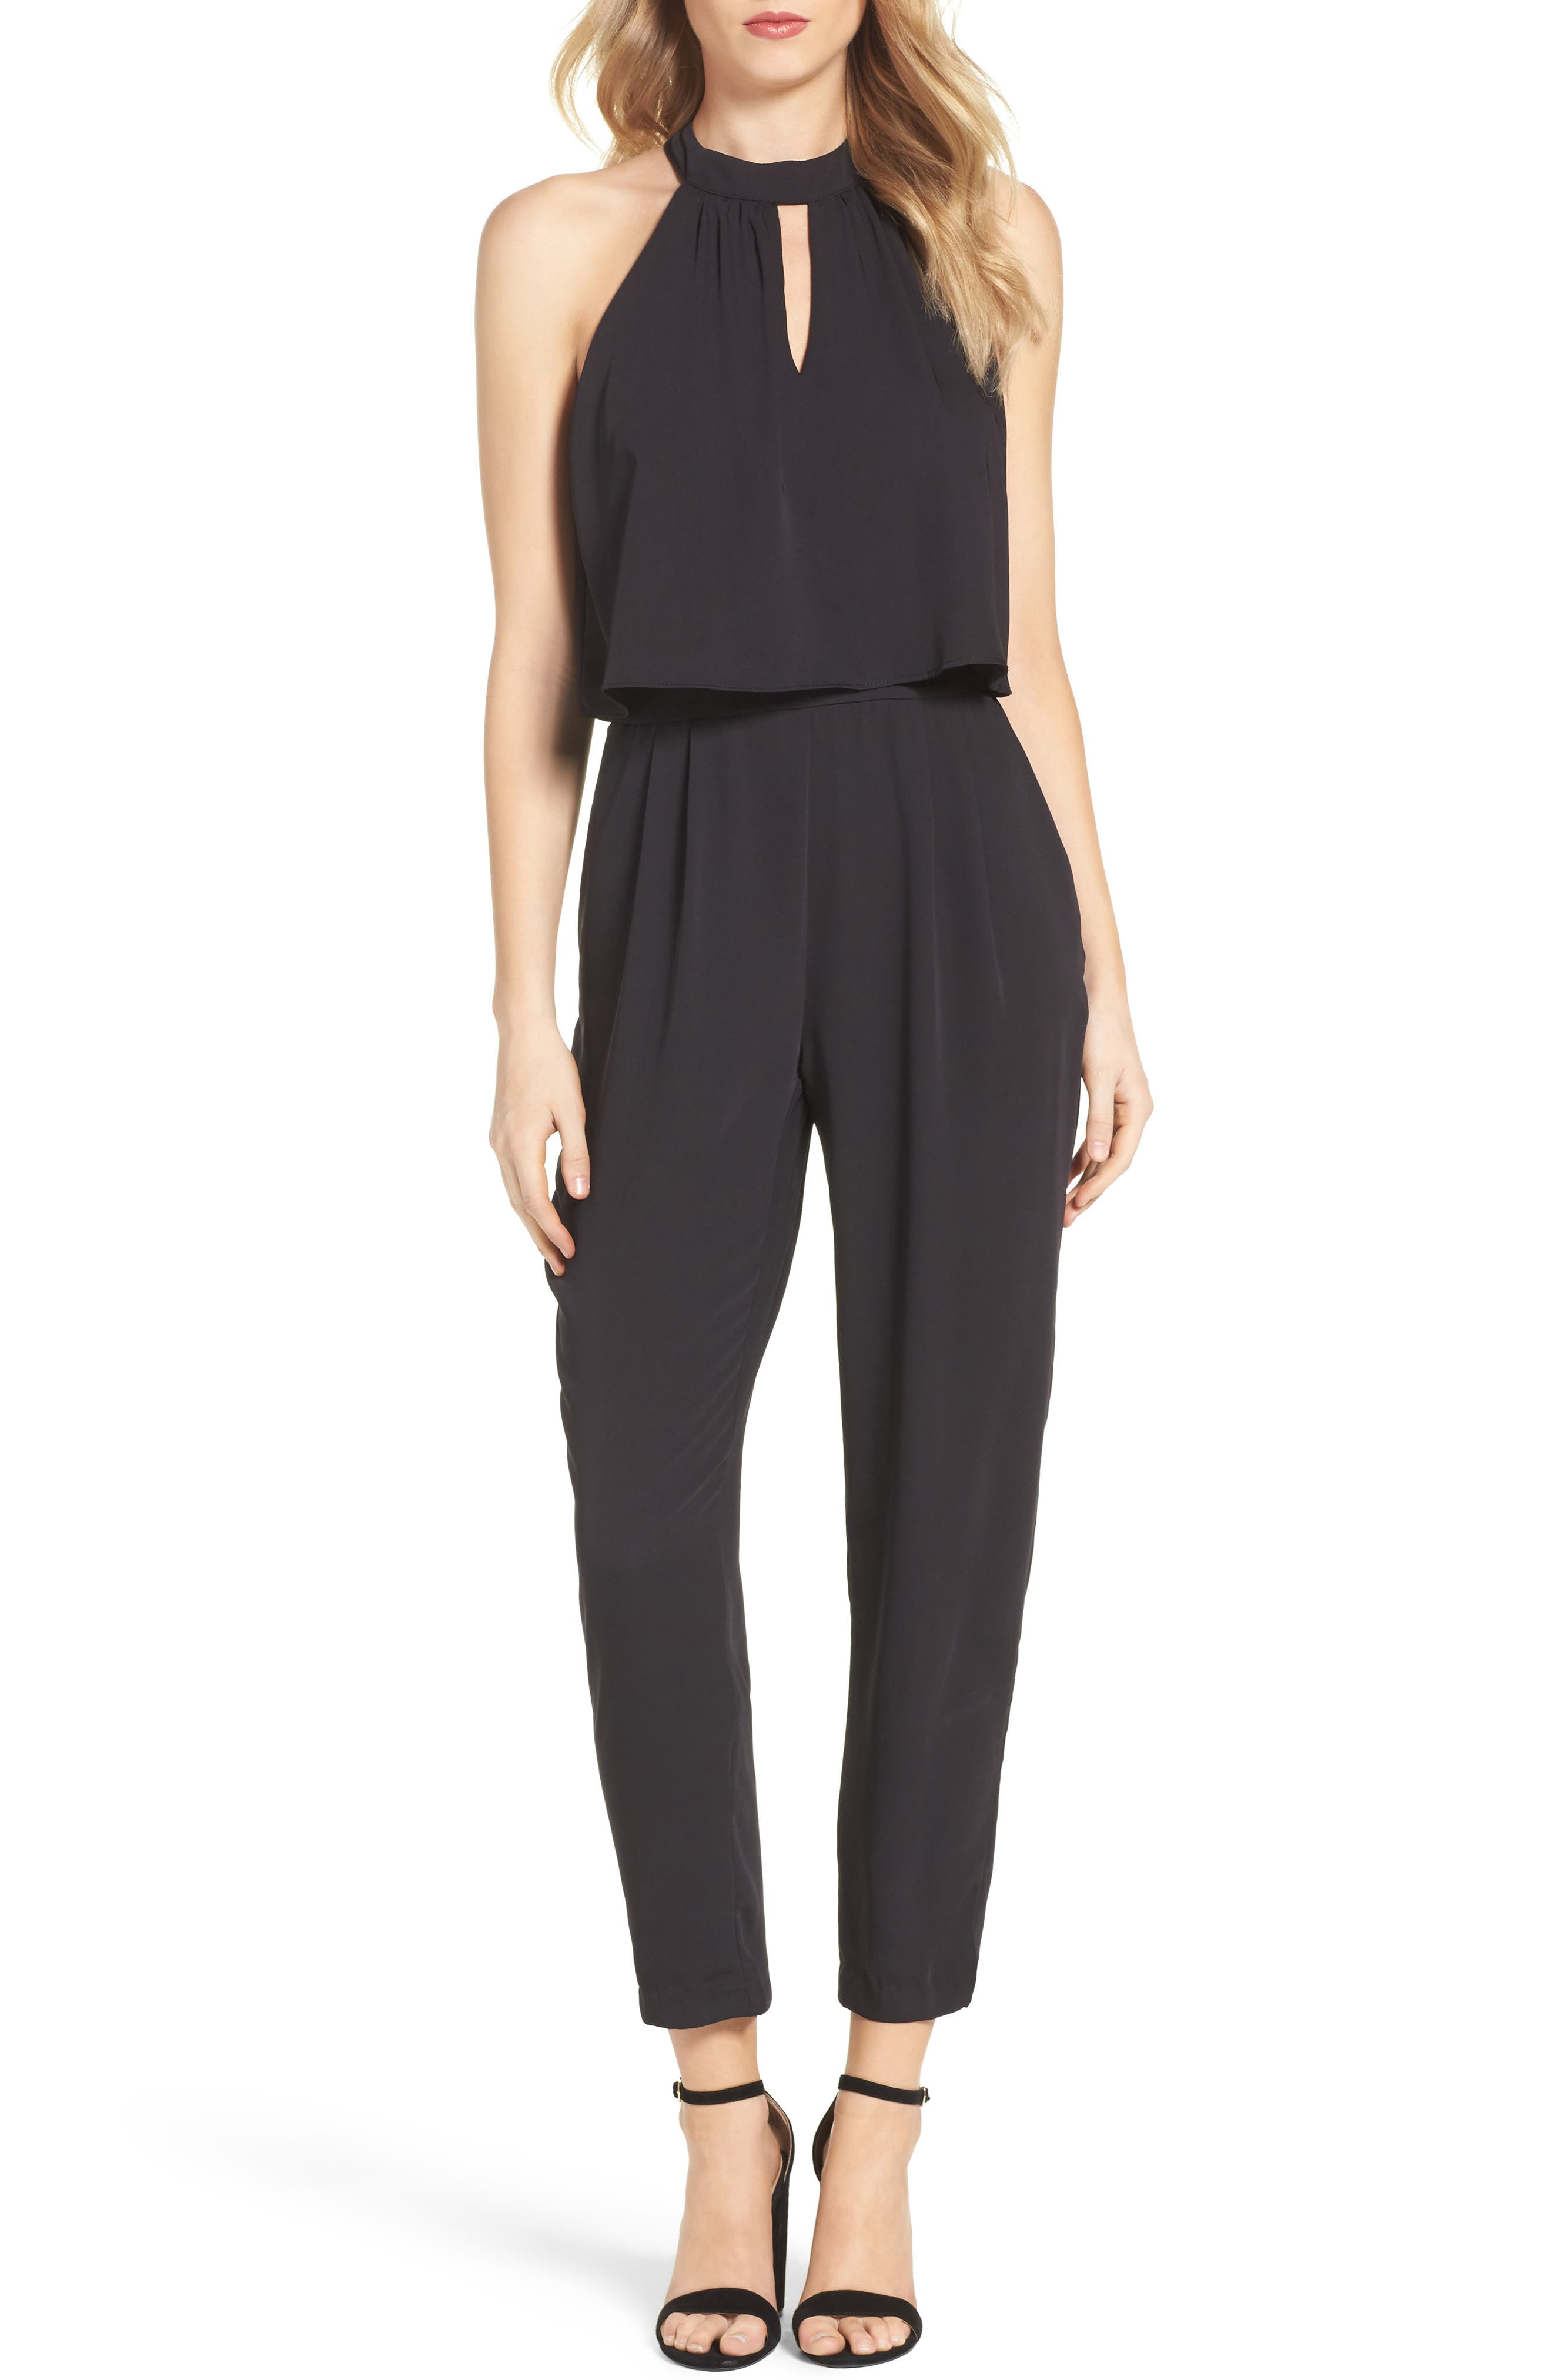 Nayden Popover Jumpsuit,                             Main thumbnail 1, color,                             Black